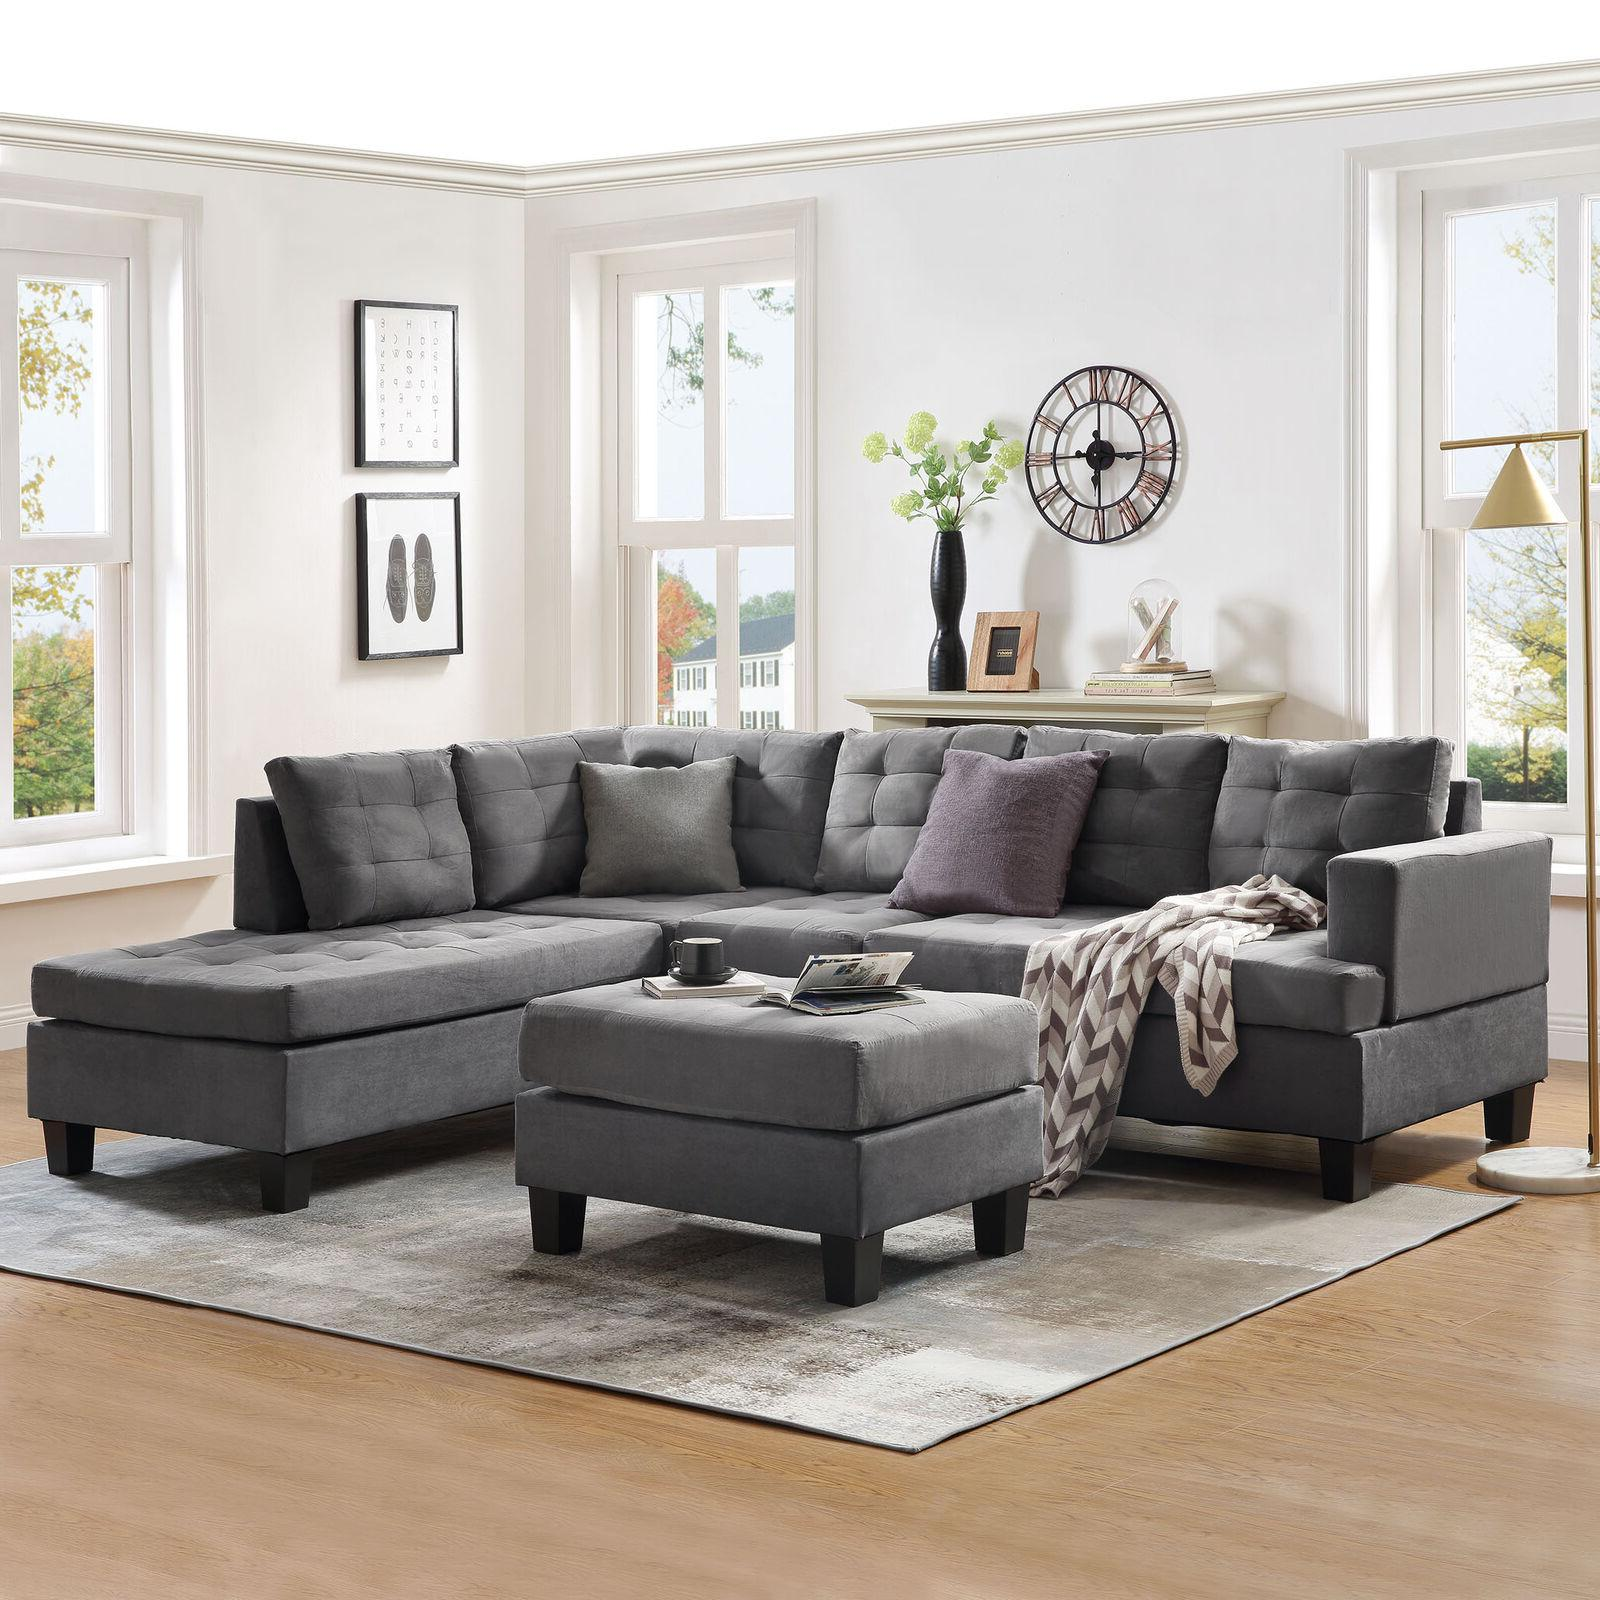 3-Piece Sectional Sofa L-Shaped Couch Blue